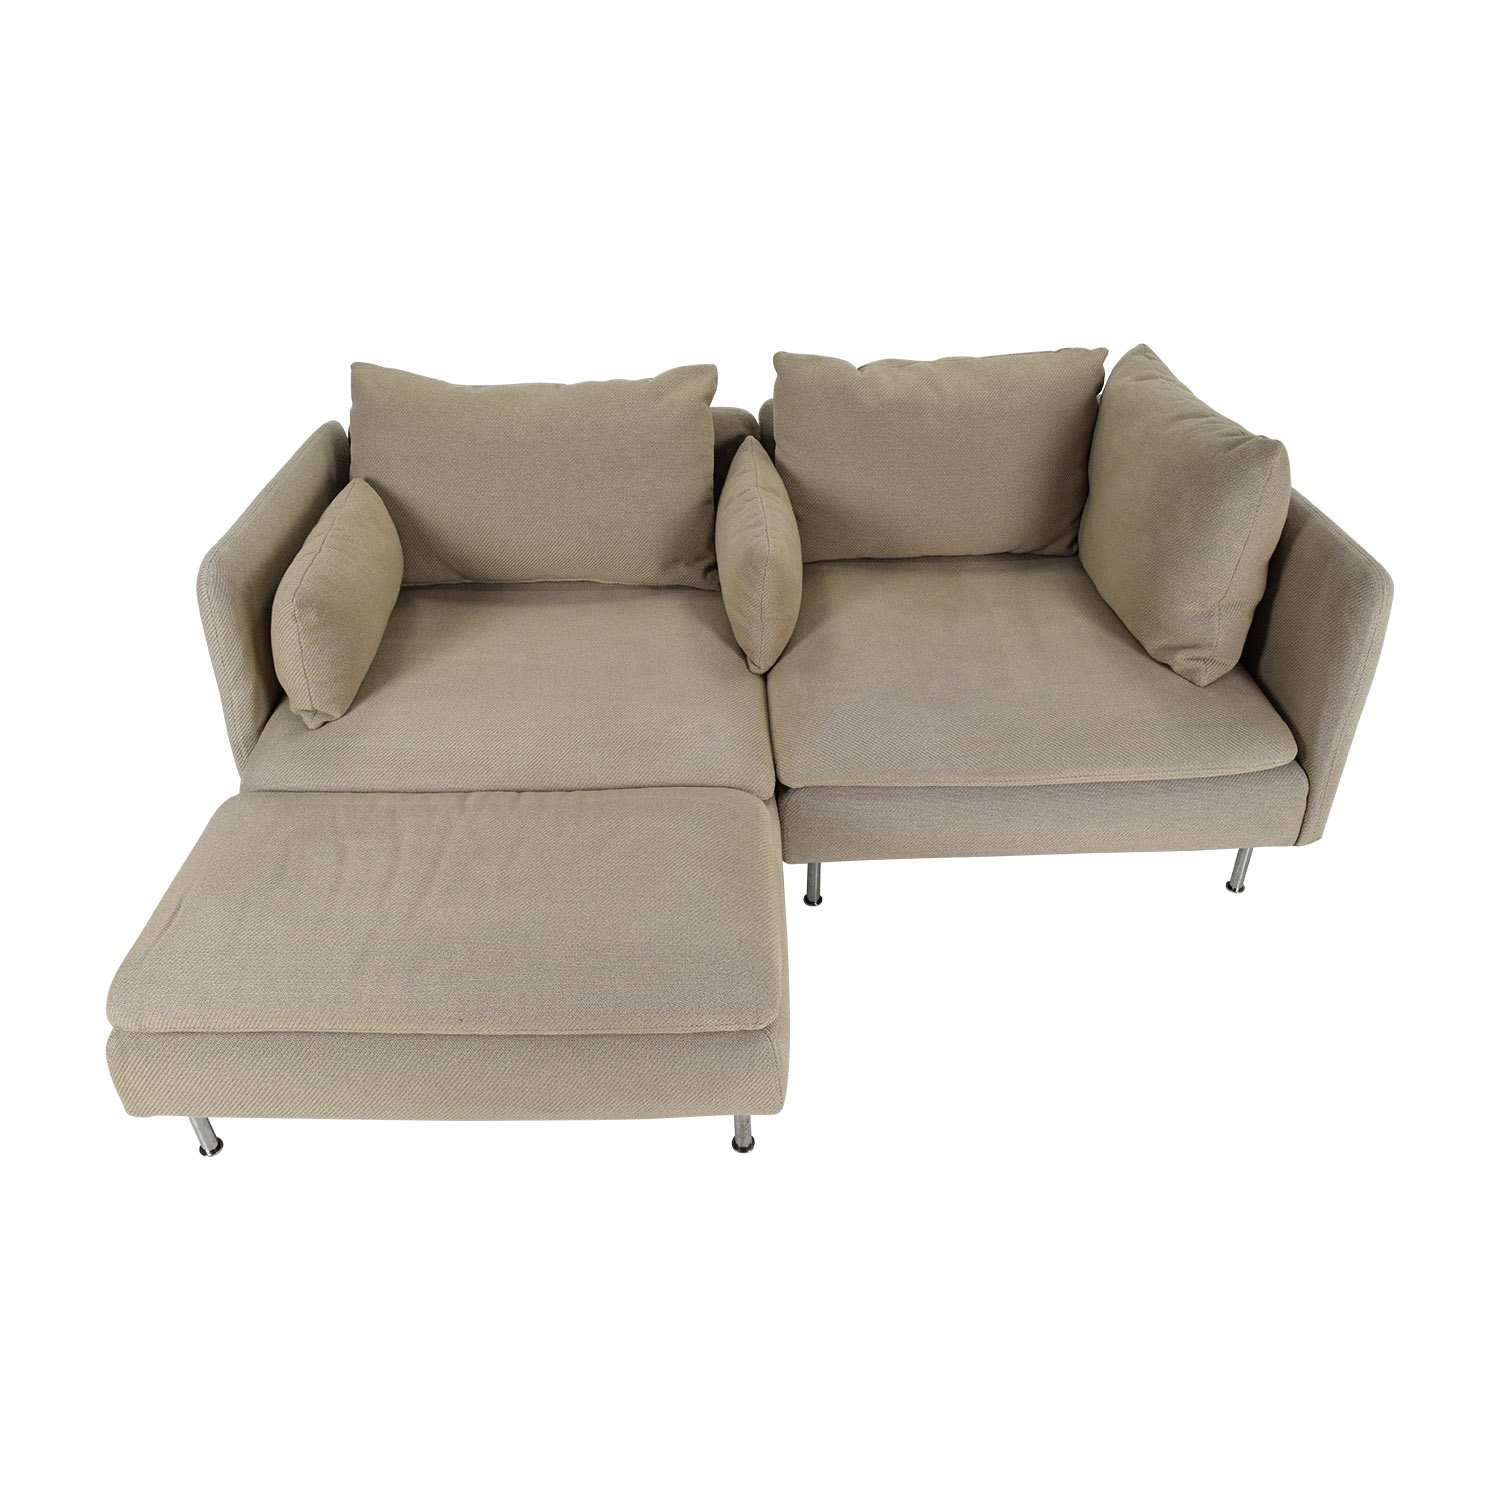 Beautiful Buy Sofa Online Marmsweb Marmsweb